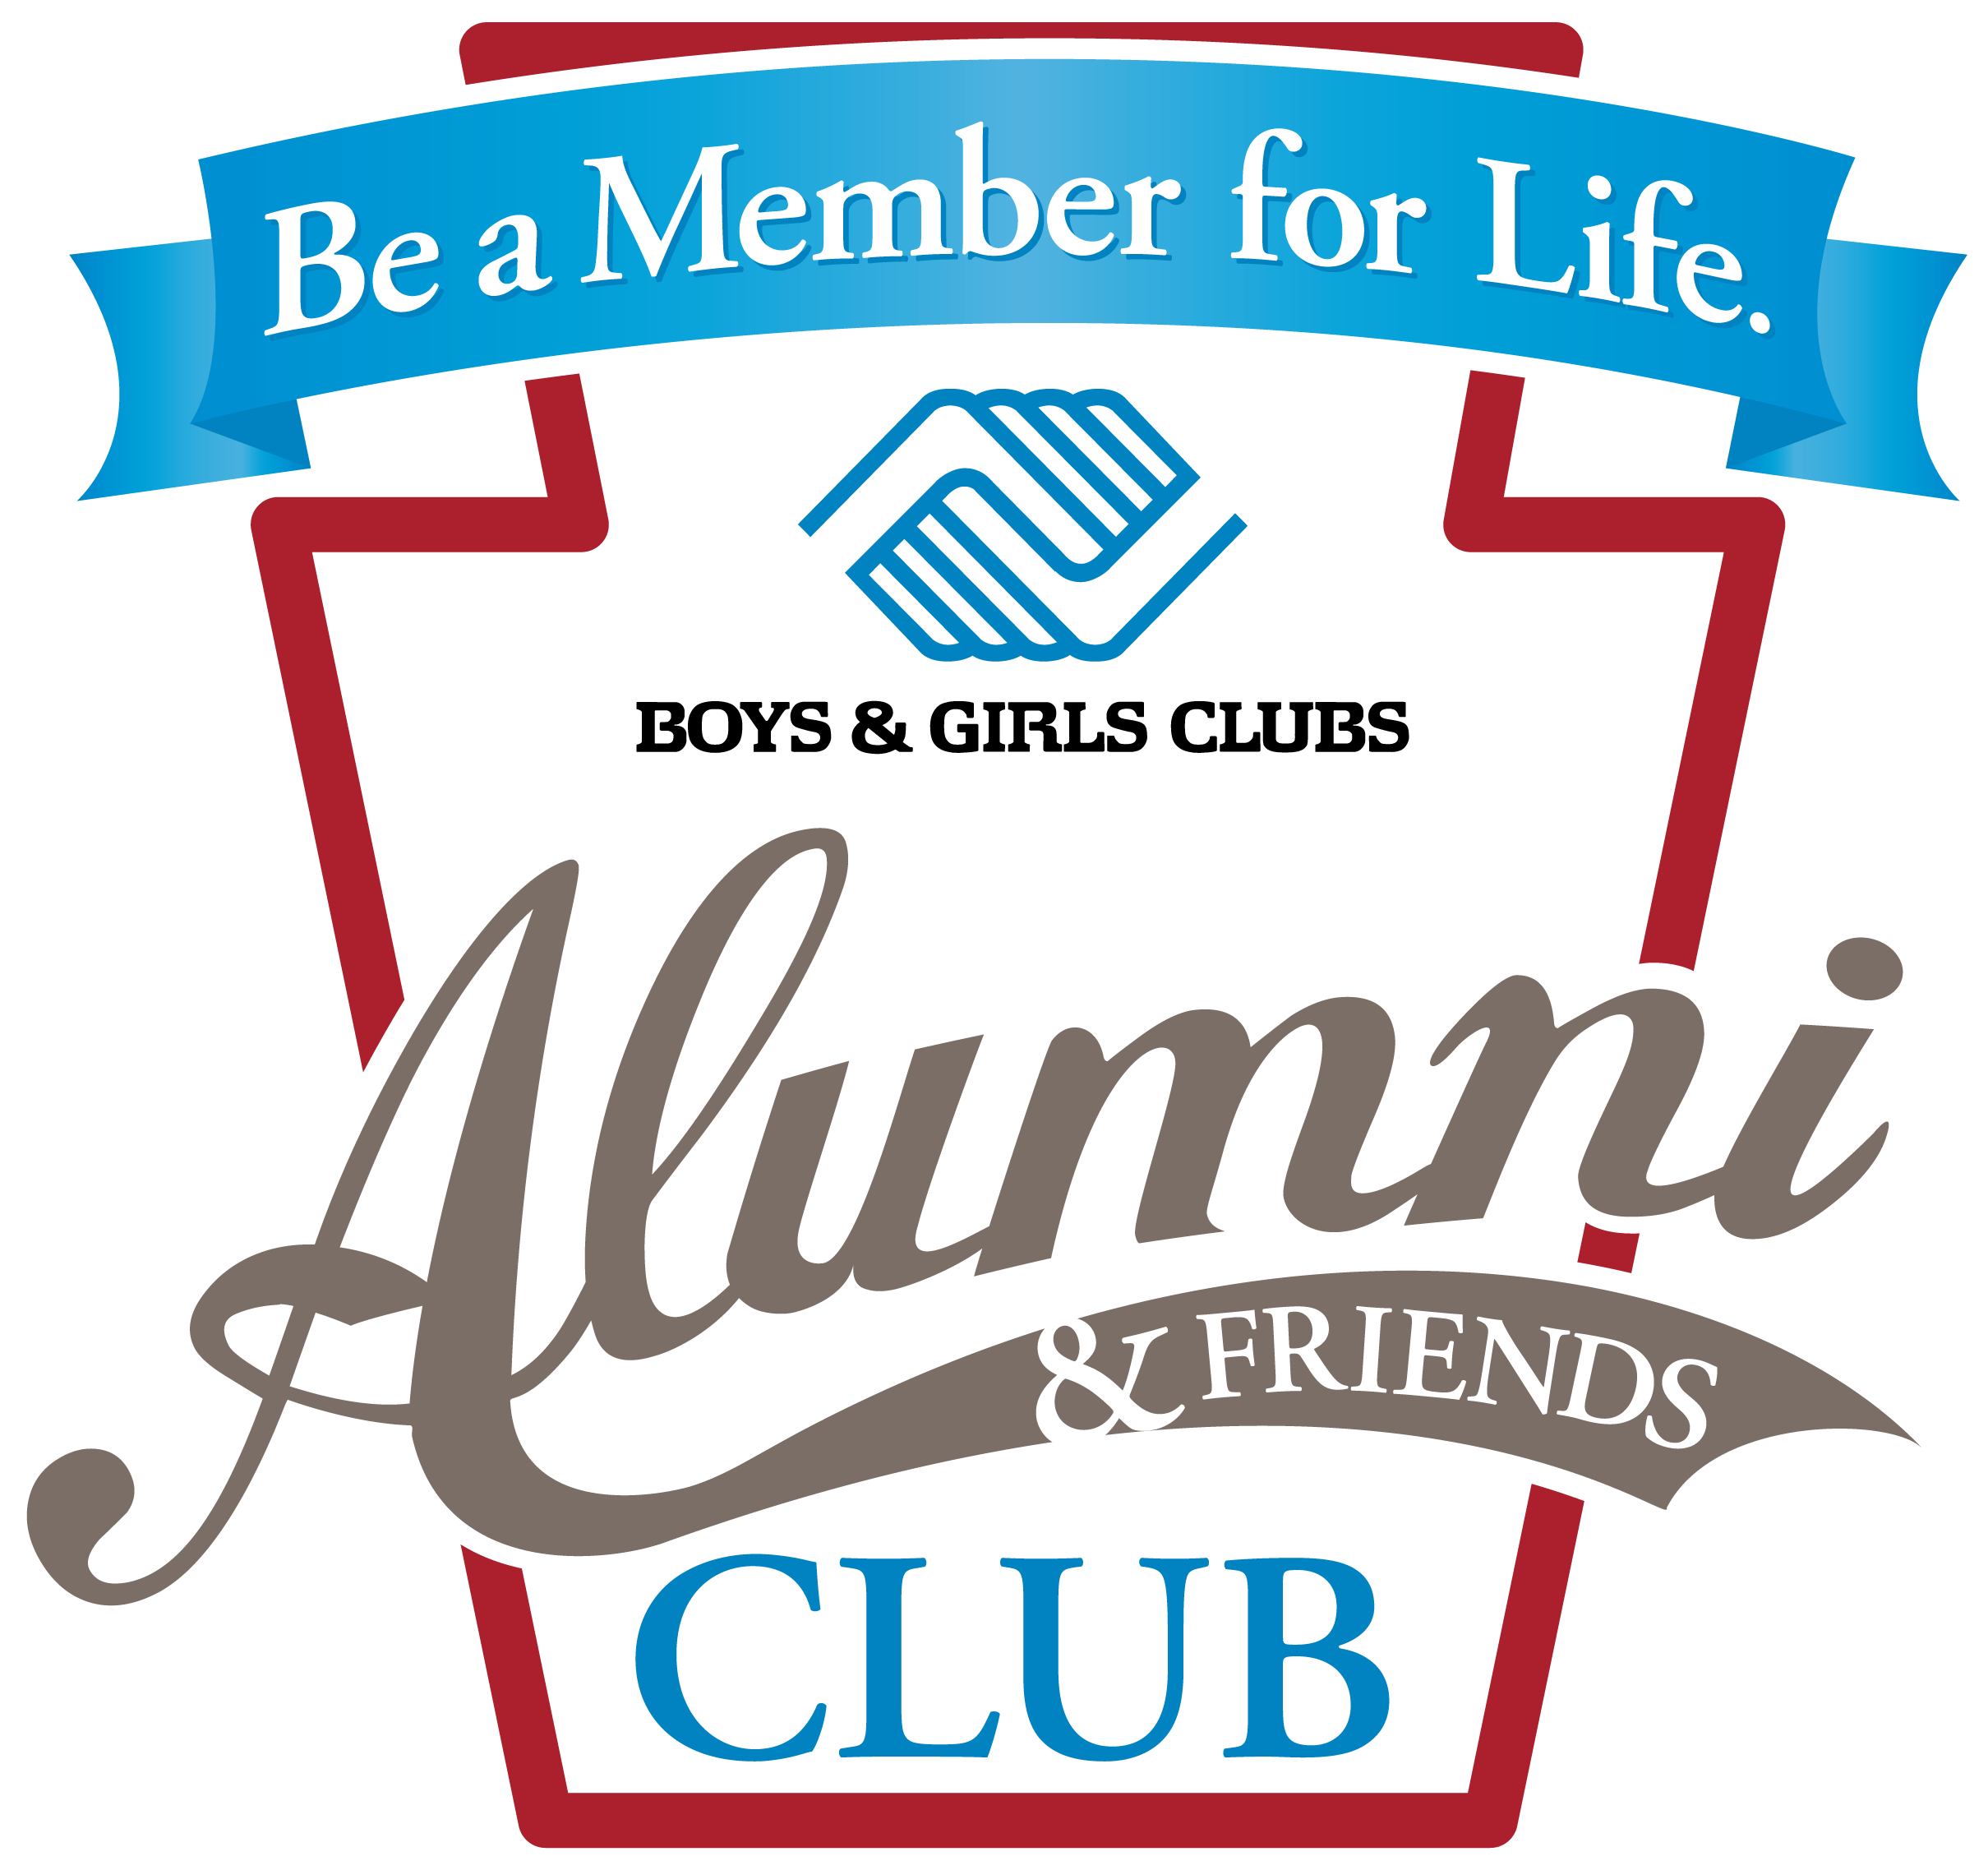 Alumni and Friends Club